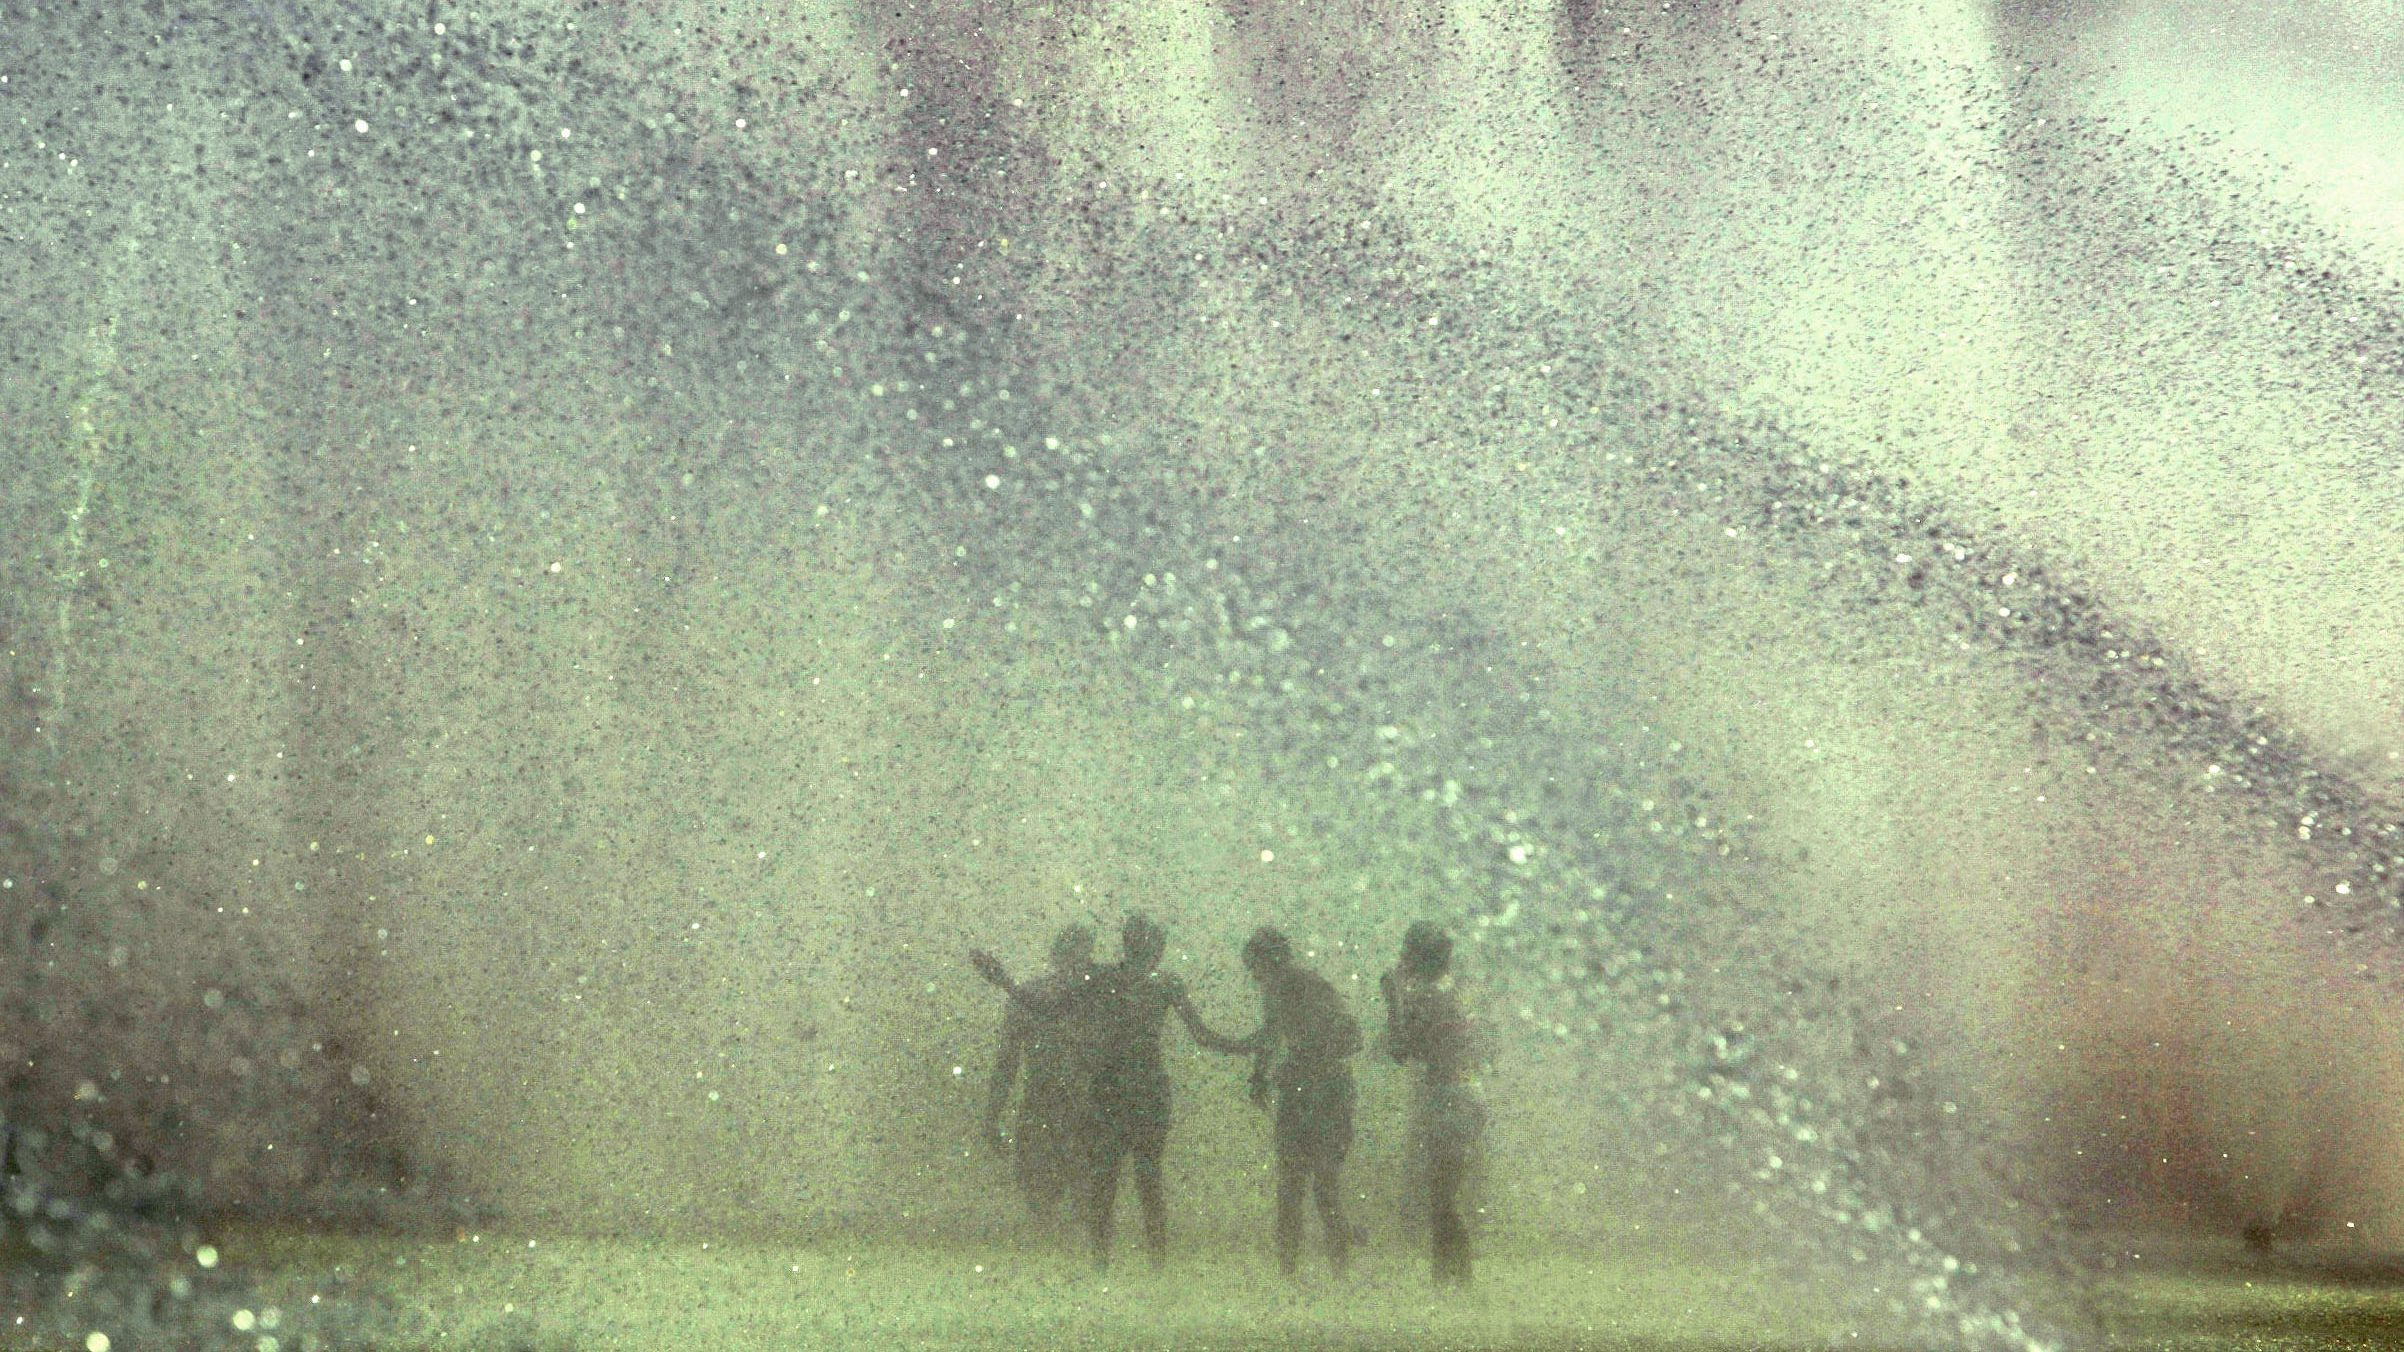 a fountain with eight shoots of water coming up and five blurry outlines of children playing in it.